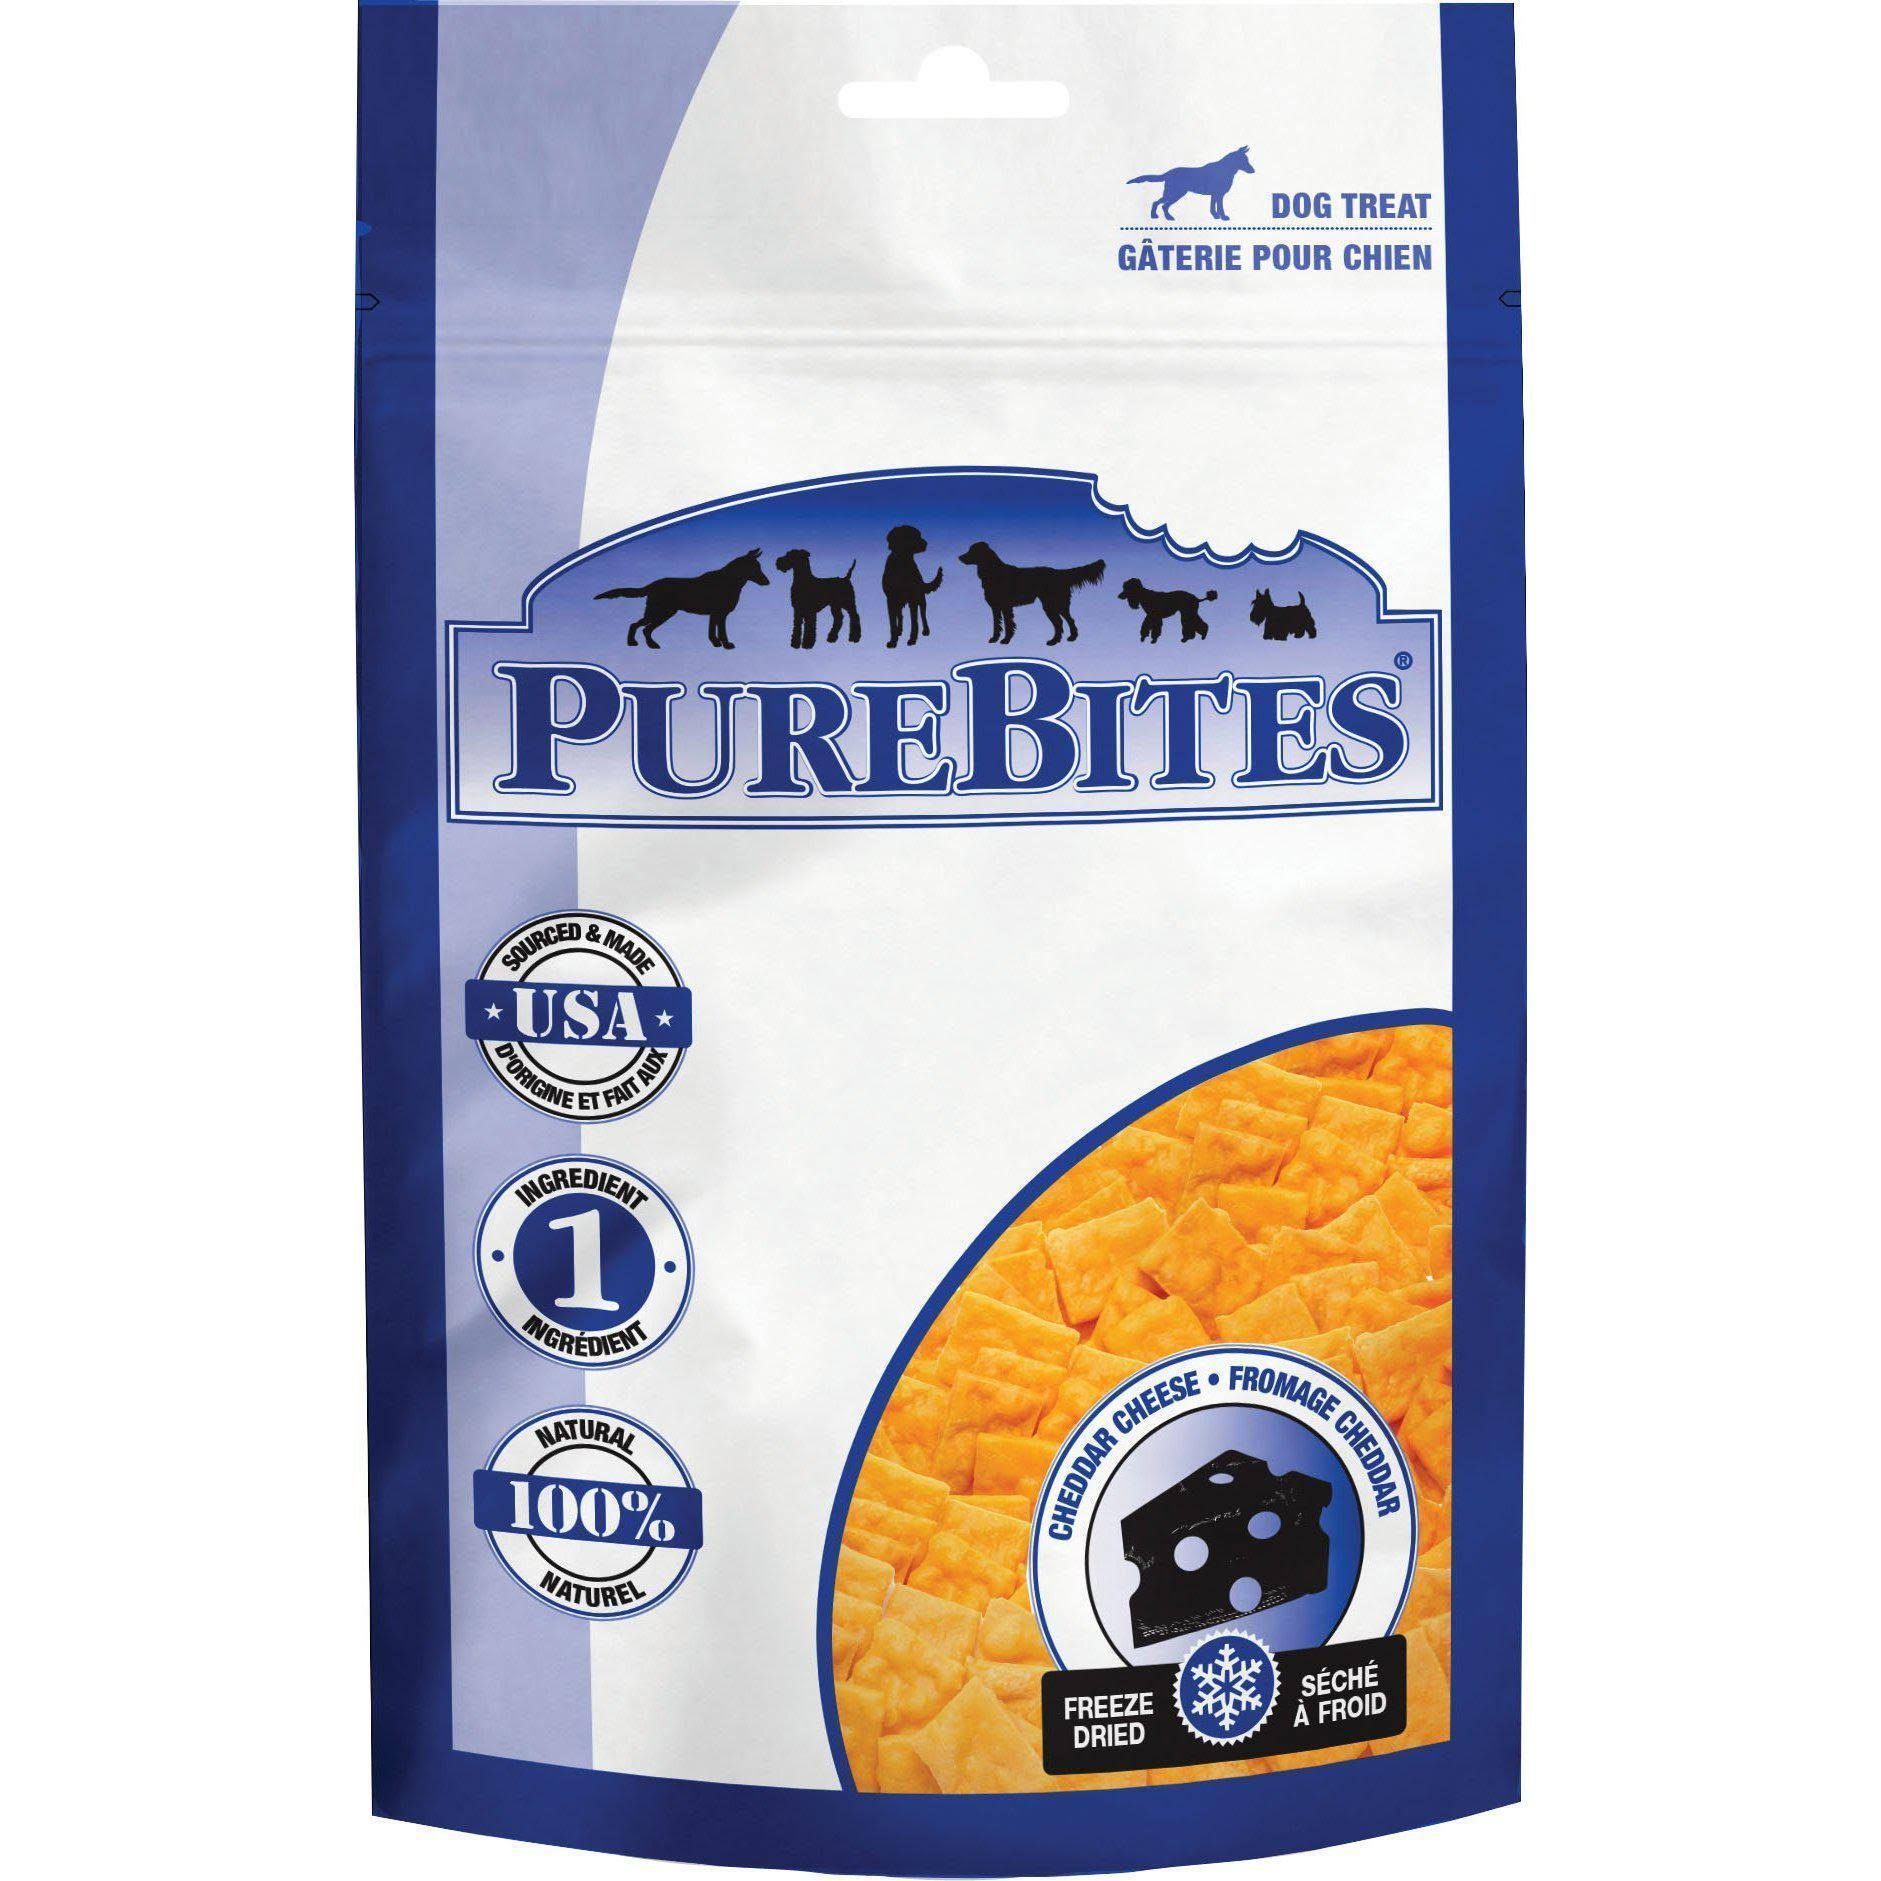 PureBites Dog Treats - Beef Liver, 16.6oz